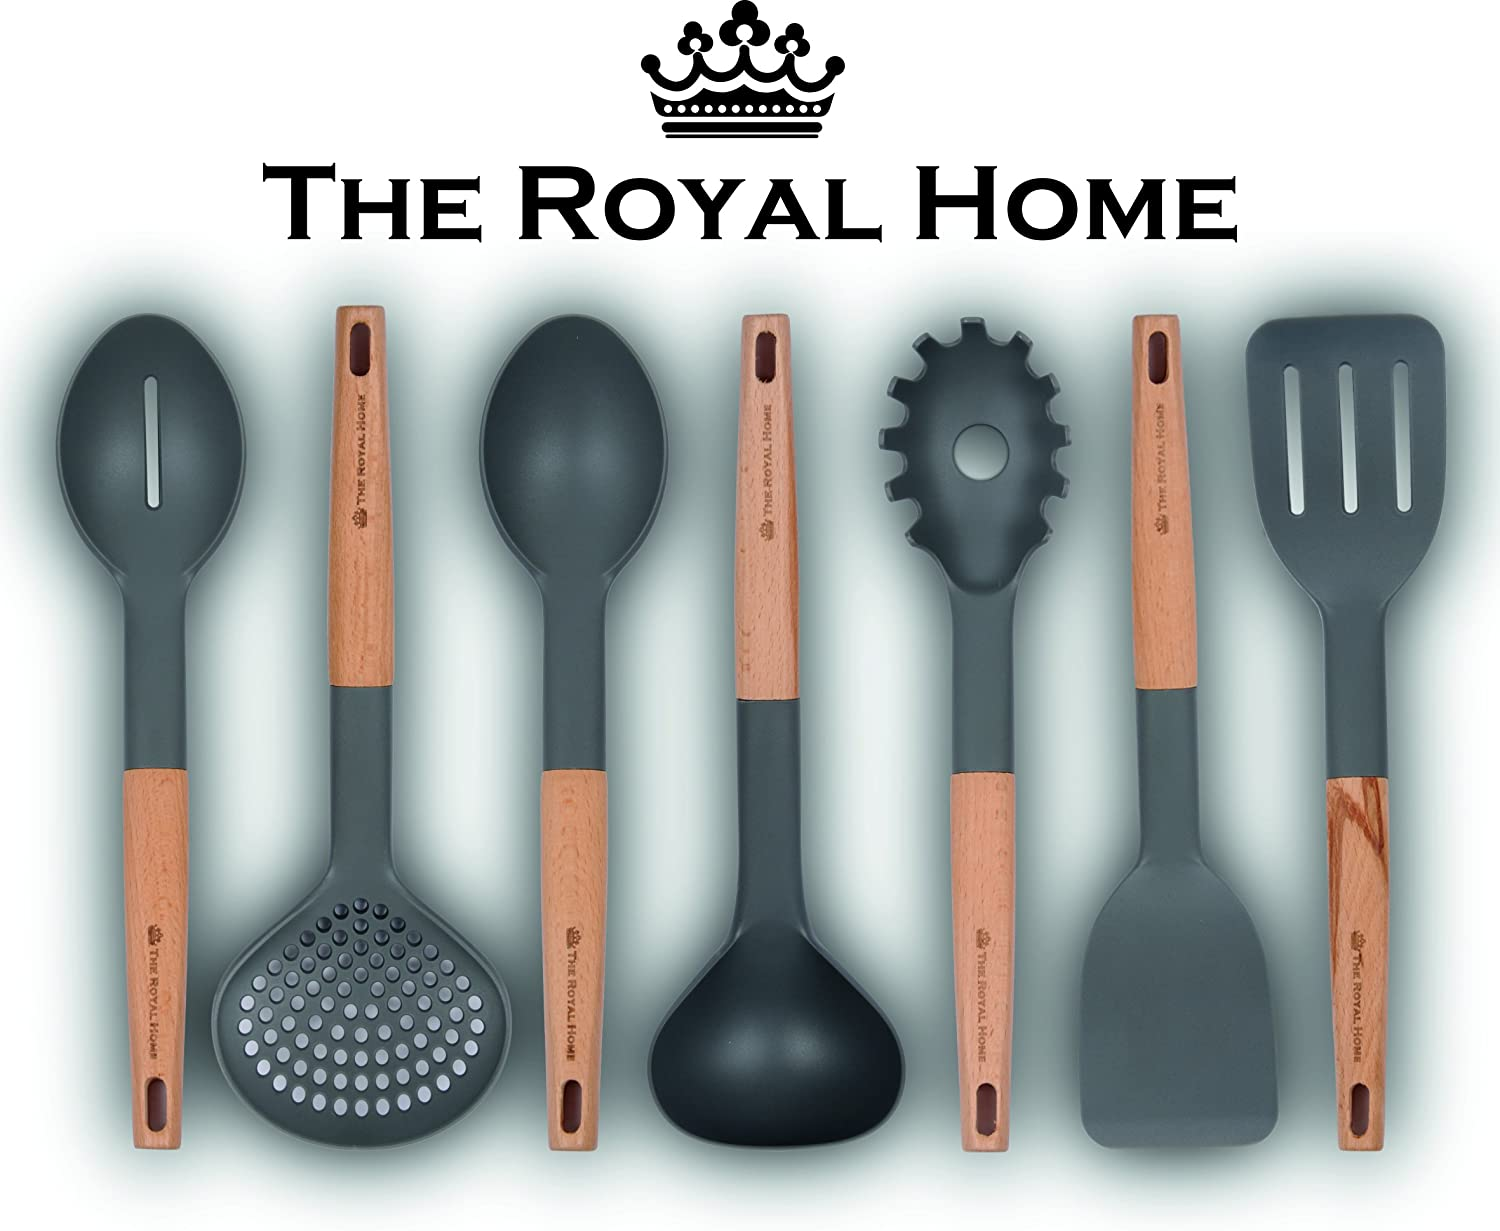 Kitchen Utensil Set | 7 Piece Wooden Handle Cooking Utensils | Nonstick Kitchen Gadgets | Nylon Kitchen Tool Kit | Pasta Spoon, Slotted Turner, Spoon, Spatula, Strainer, Ladle, Slotted Spoon The Royal Home